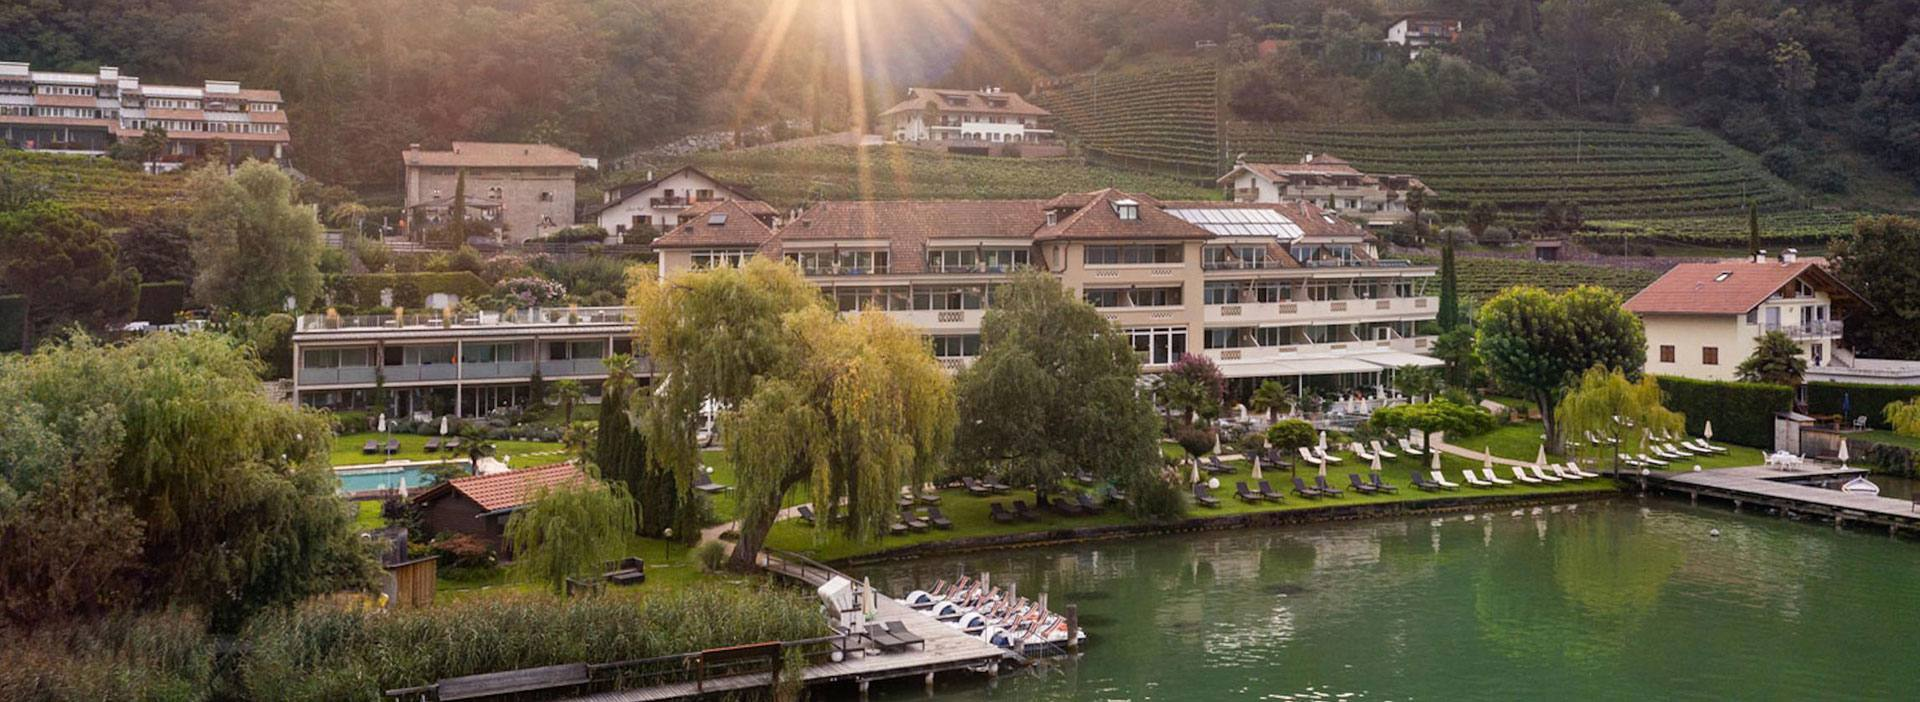 Parc Hotel am See